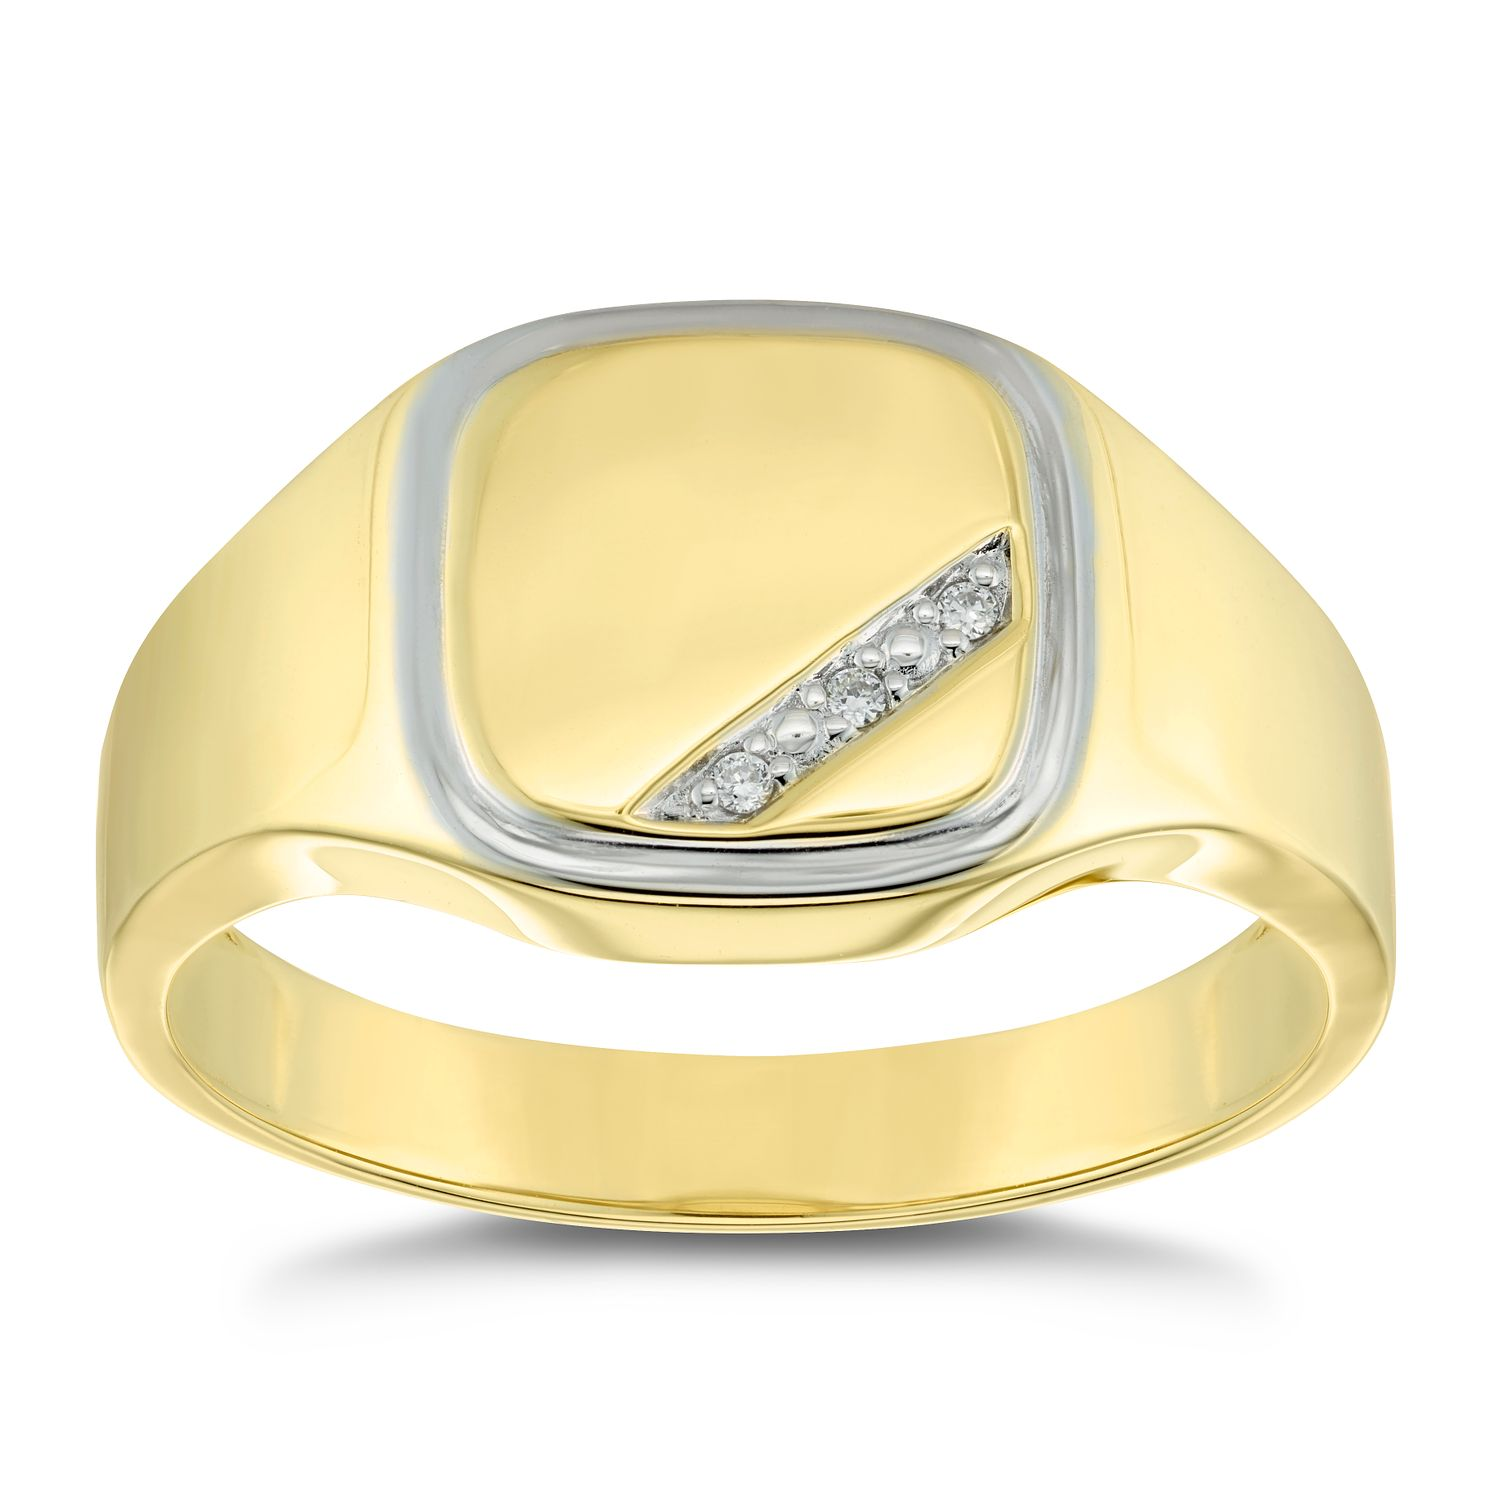 9ct Yellow Gold Diamond Set Square Signet Ring - Product number 4906799